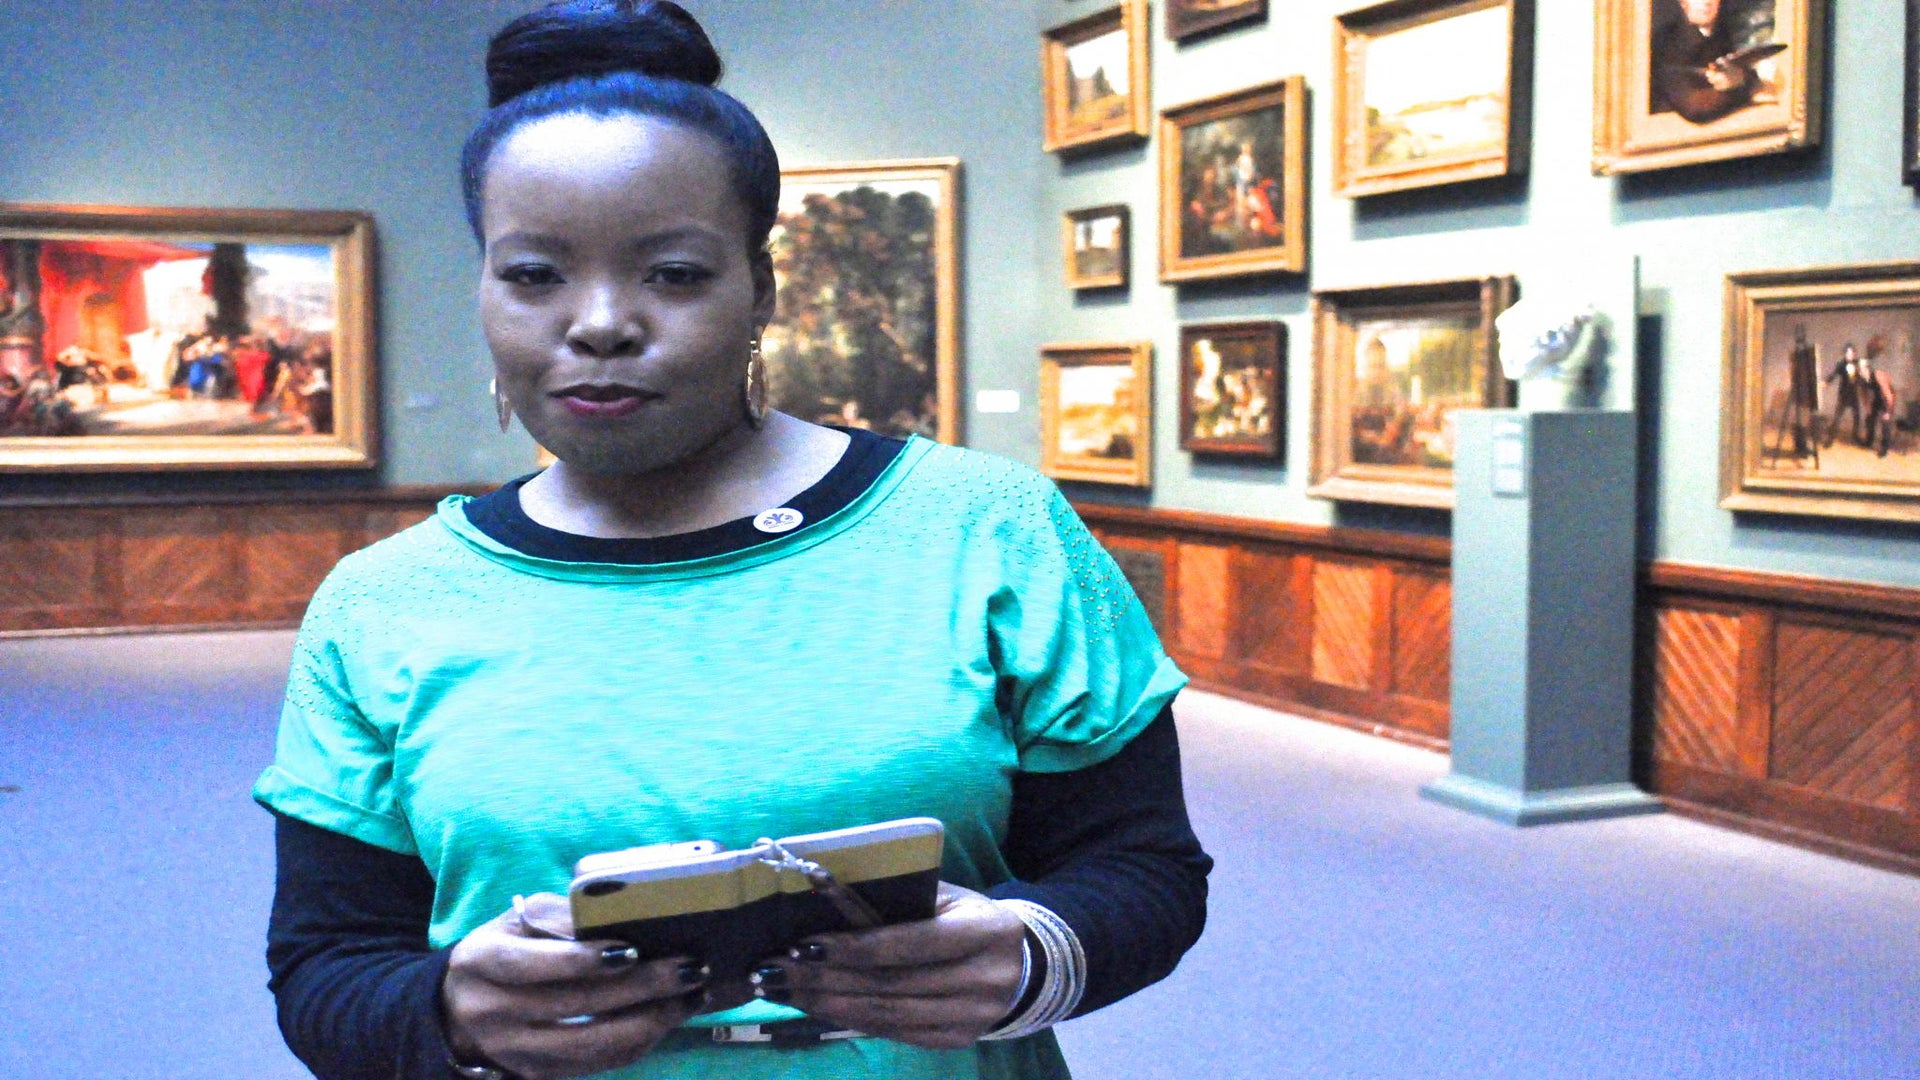 A Day in the Life of a Digital Diva: Mercedes Jones